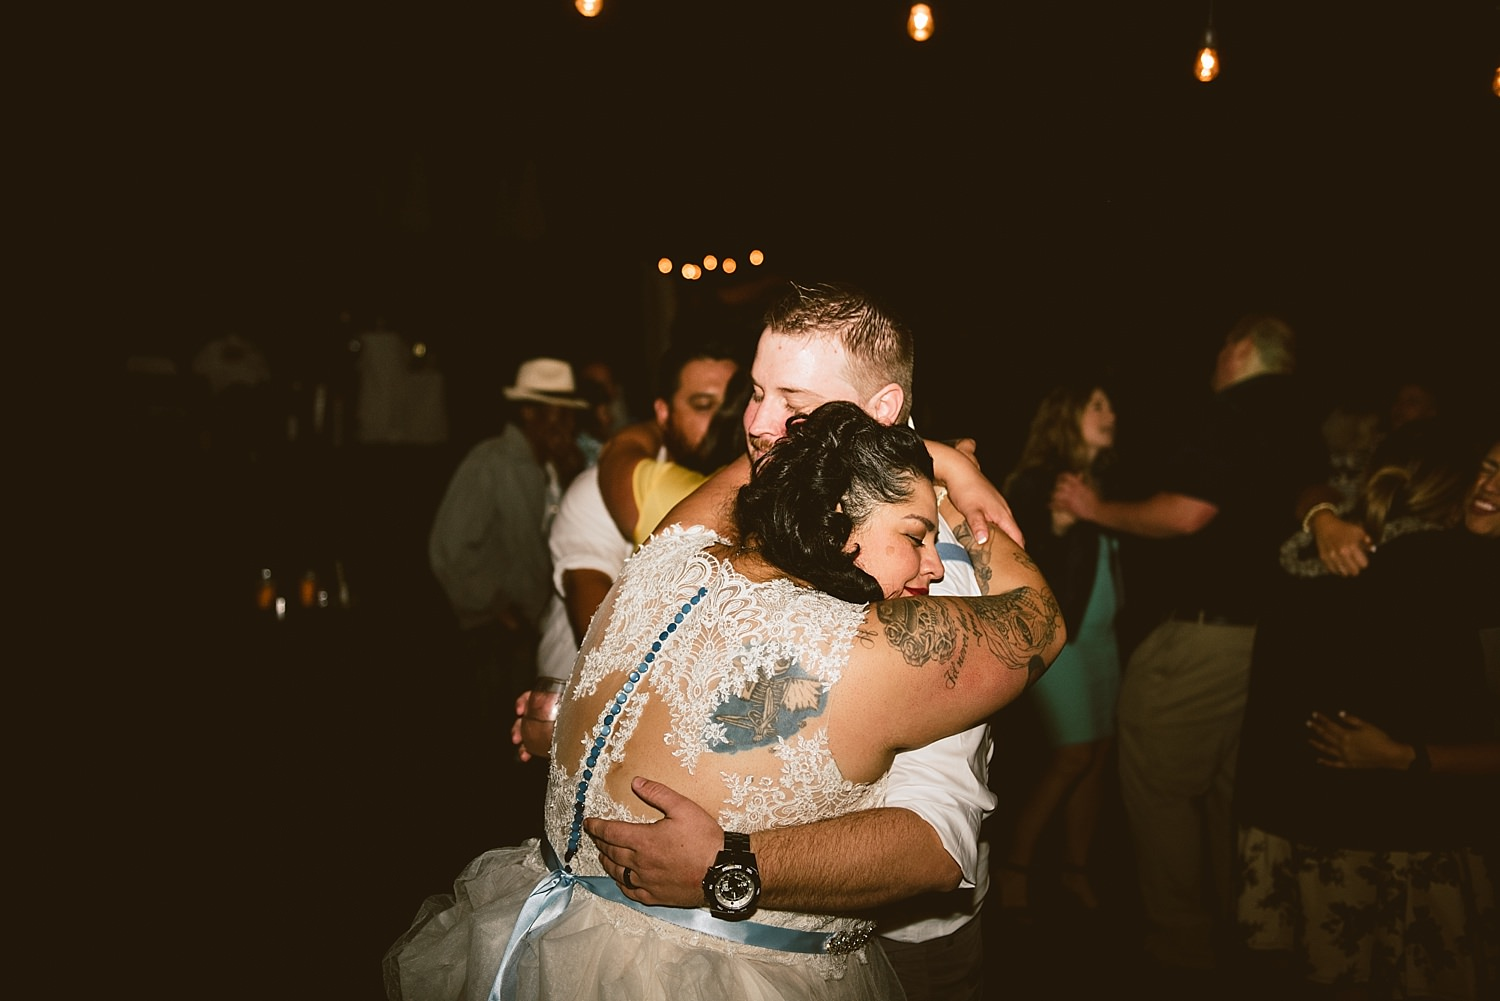 bride and groom hugging at the end of the night